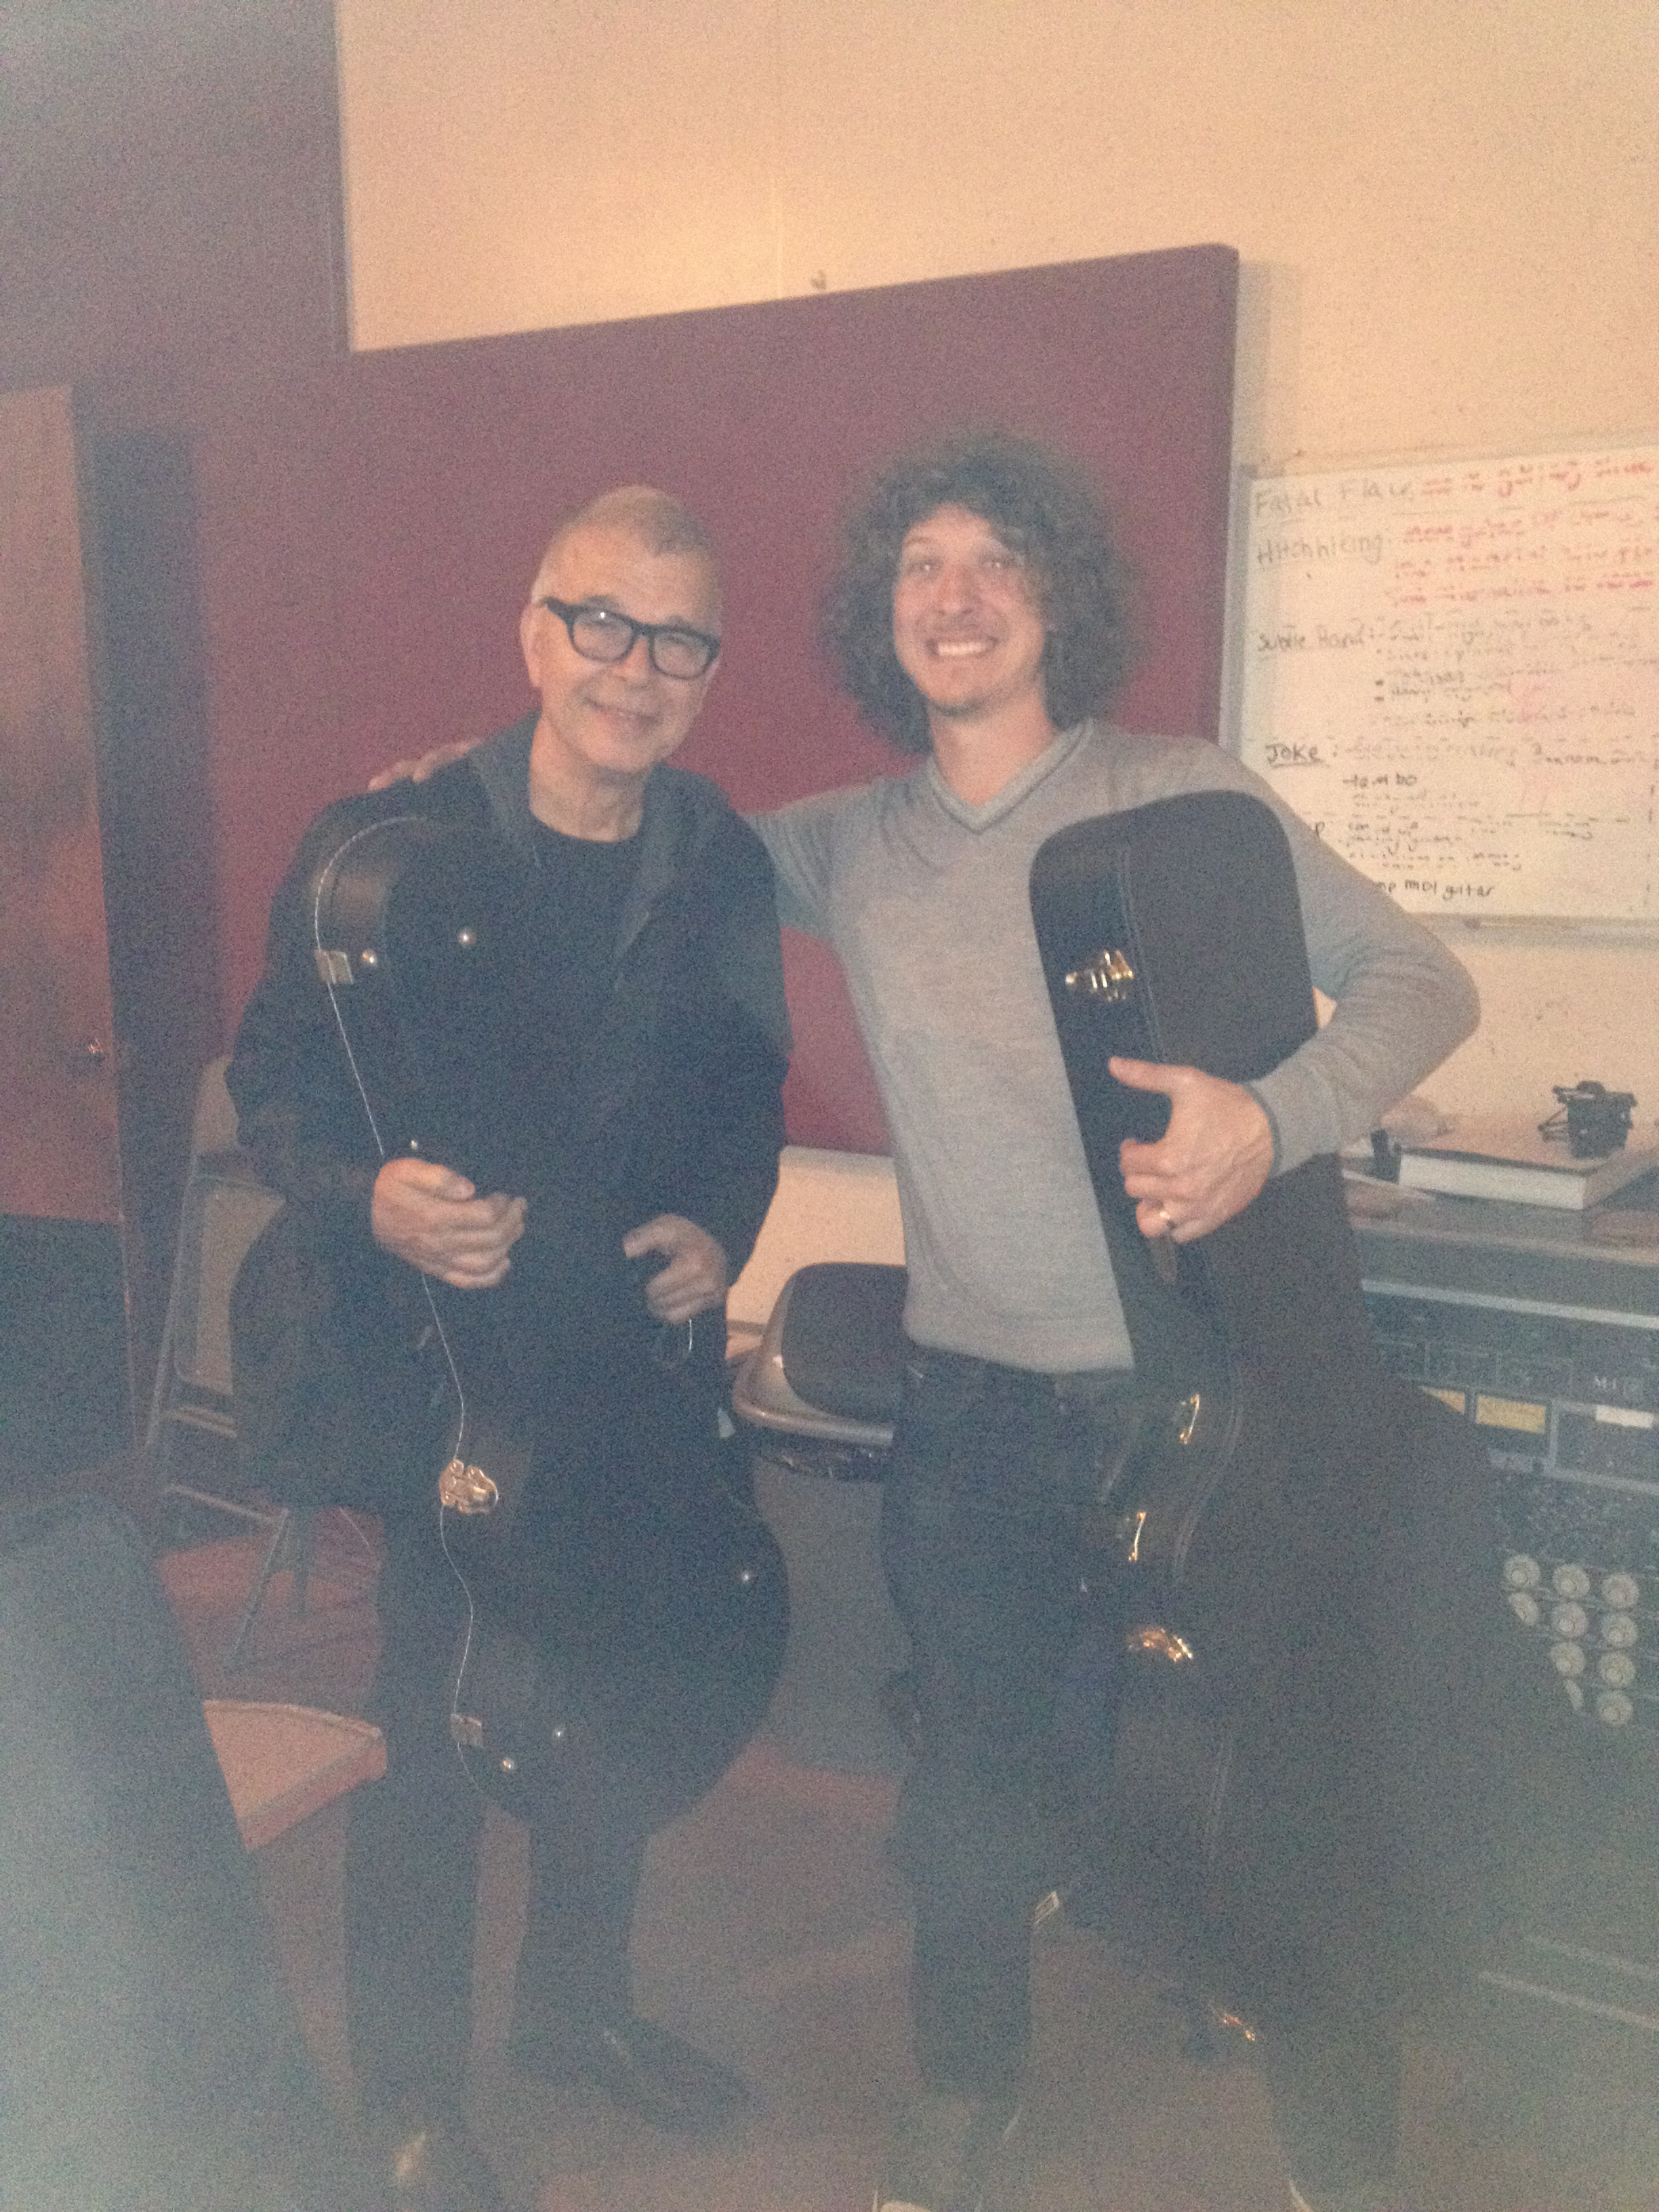 With Tony Visconti